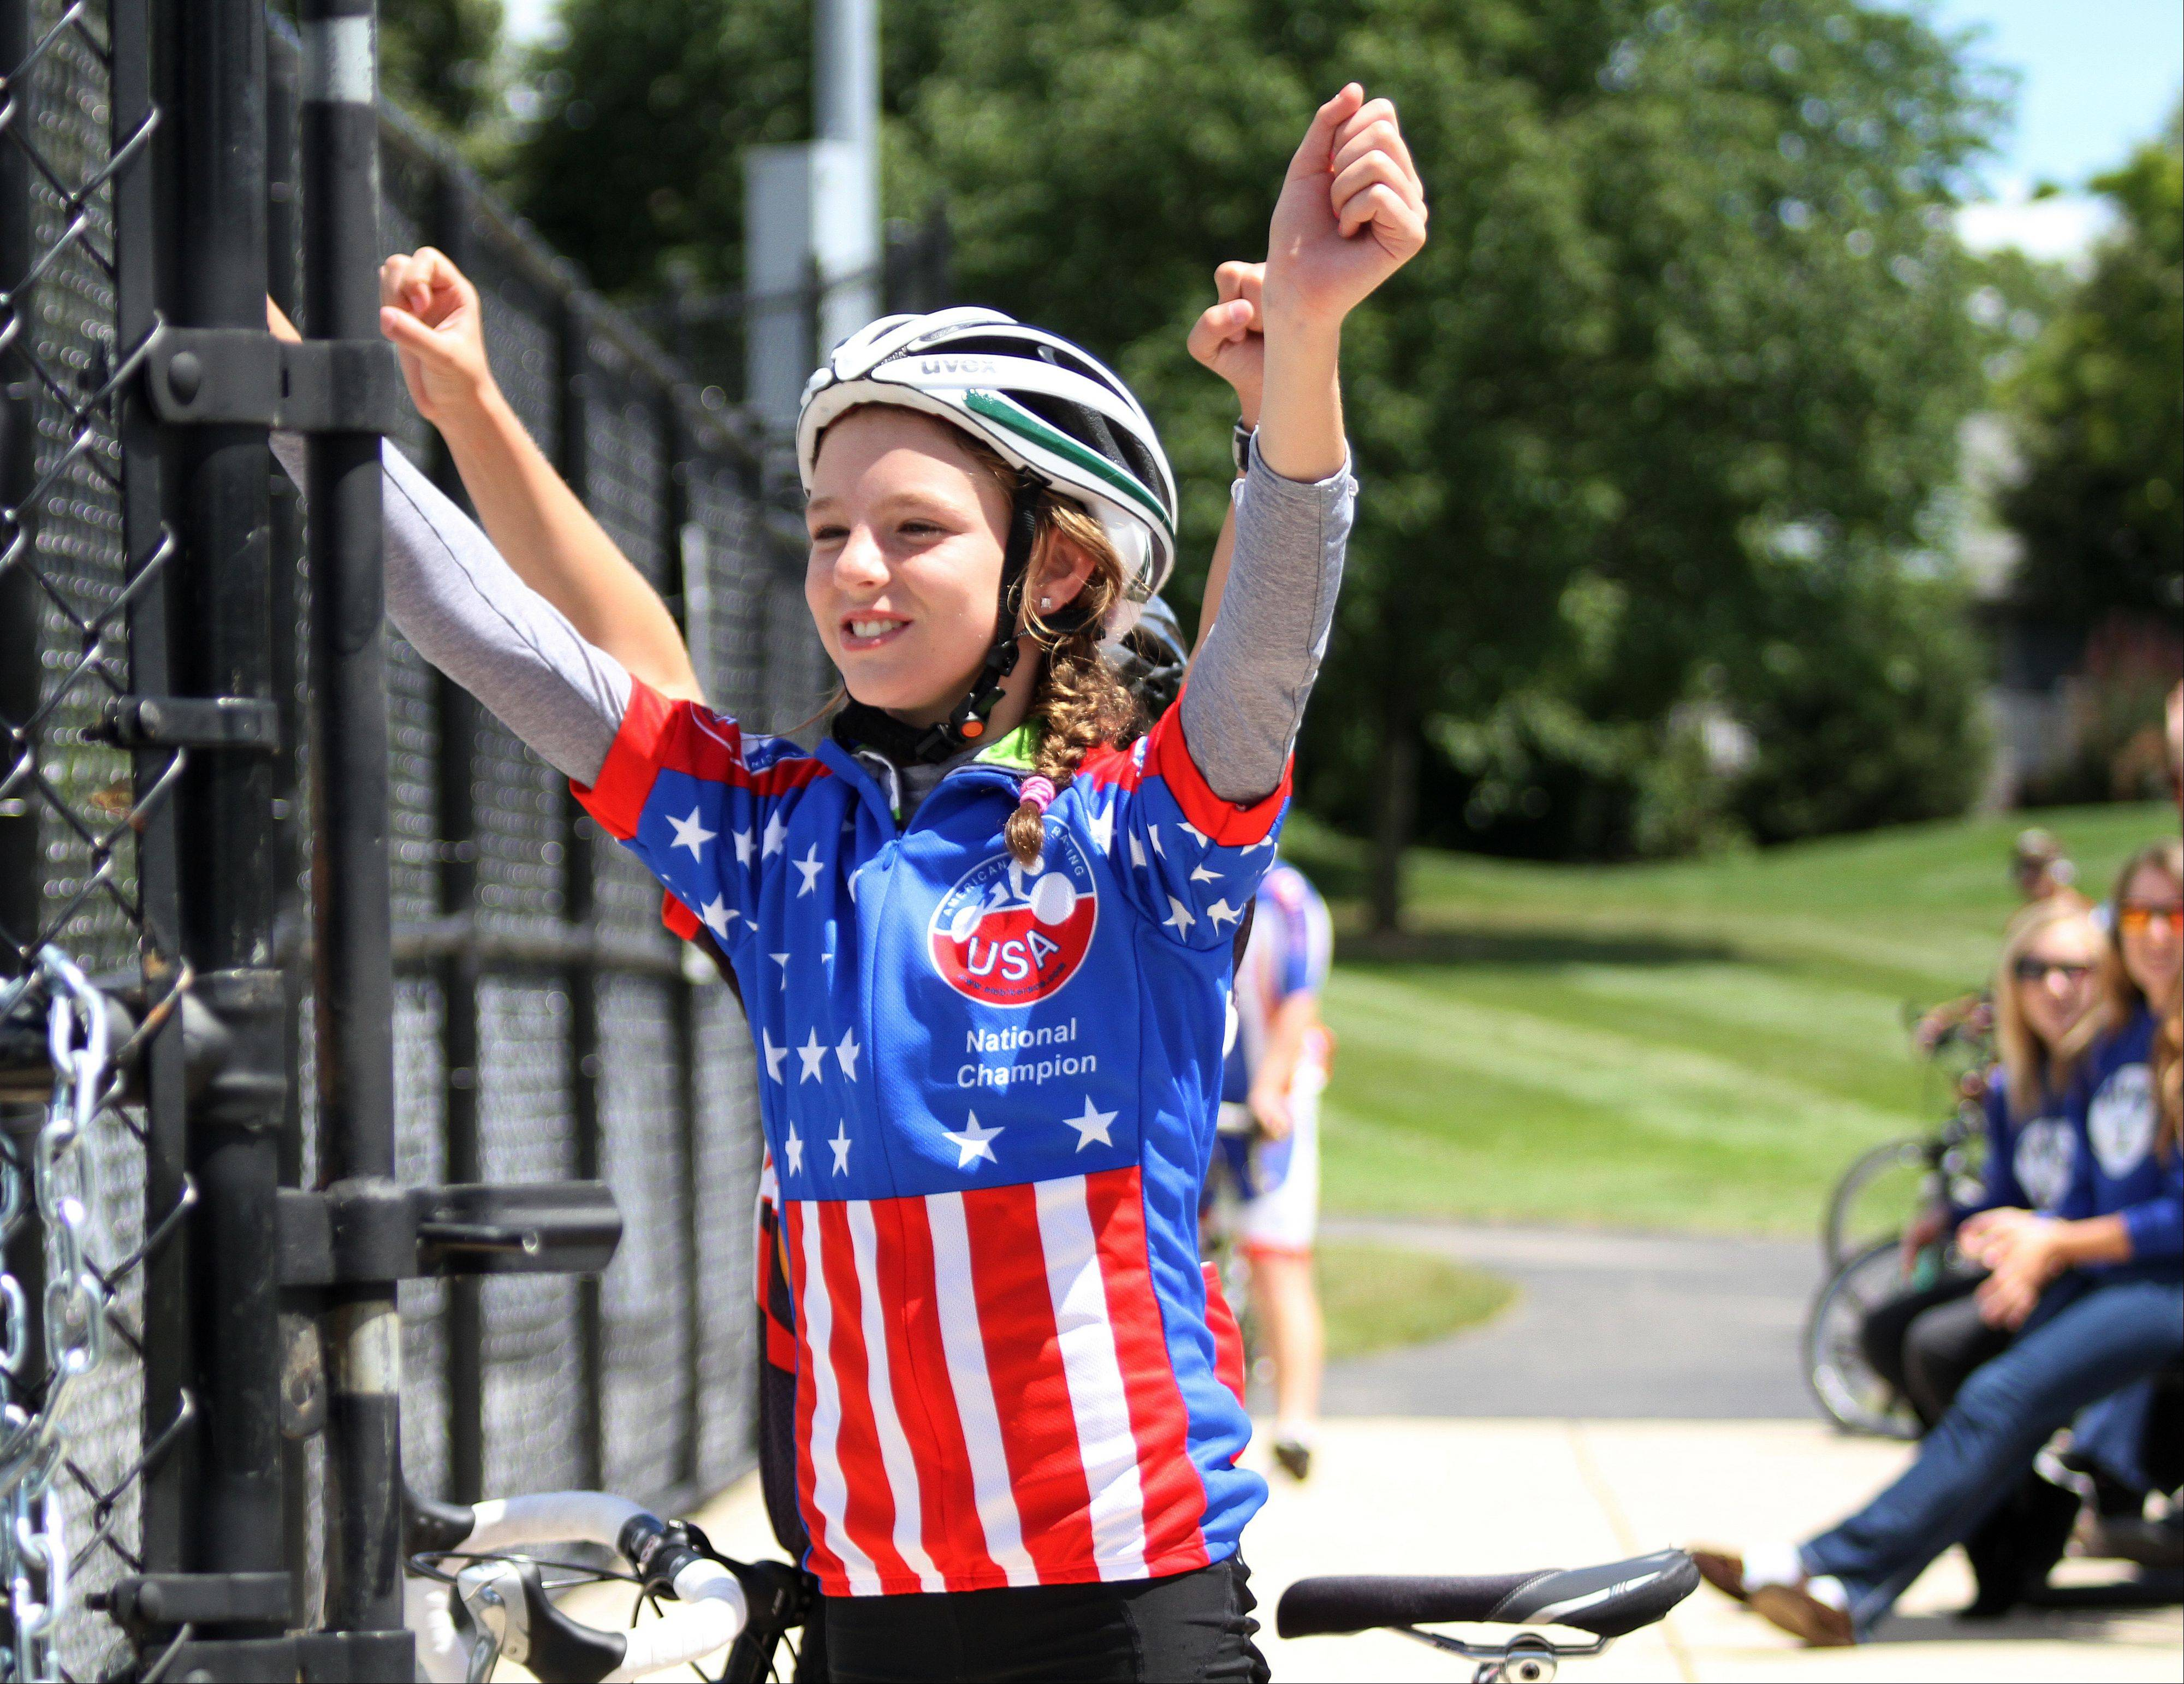 Danielle Krebs of St. Charles, 12, cheers on the BMX riders at the 2013 Winfield Criterium at Oakwood Park in Winfield on Sunday, July 28, 2013. Krebs won her race earlier in the day.